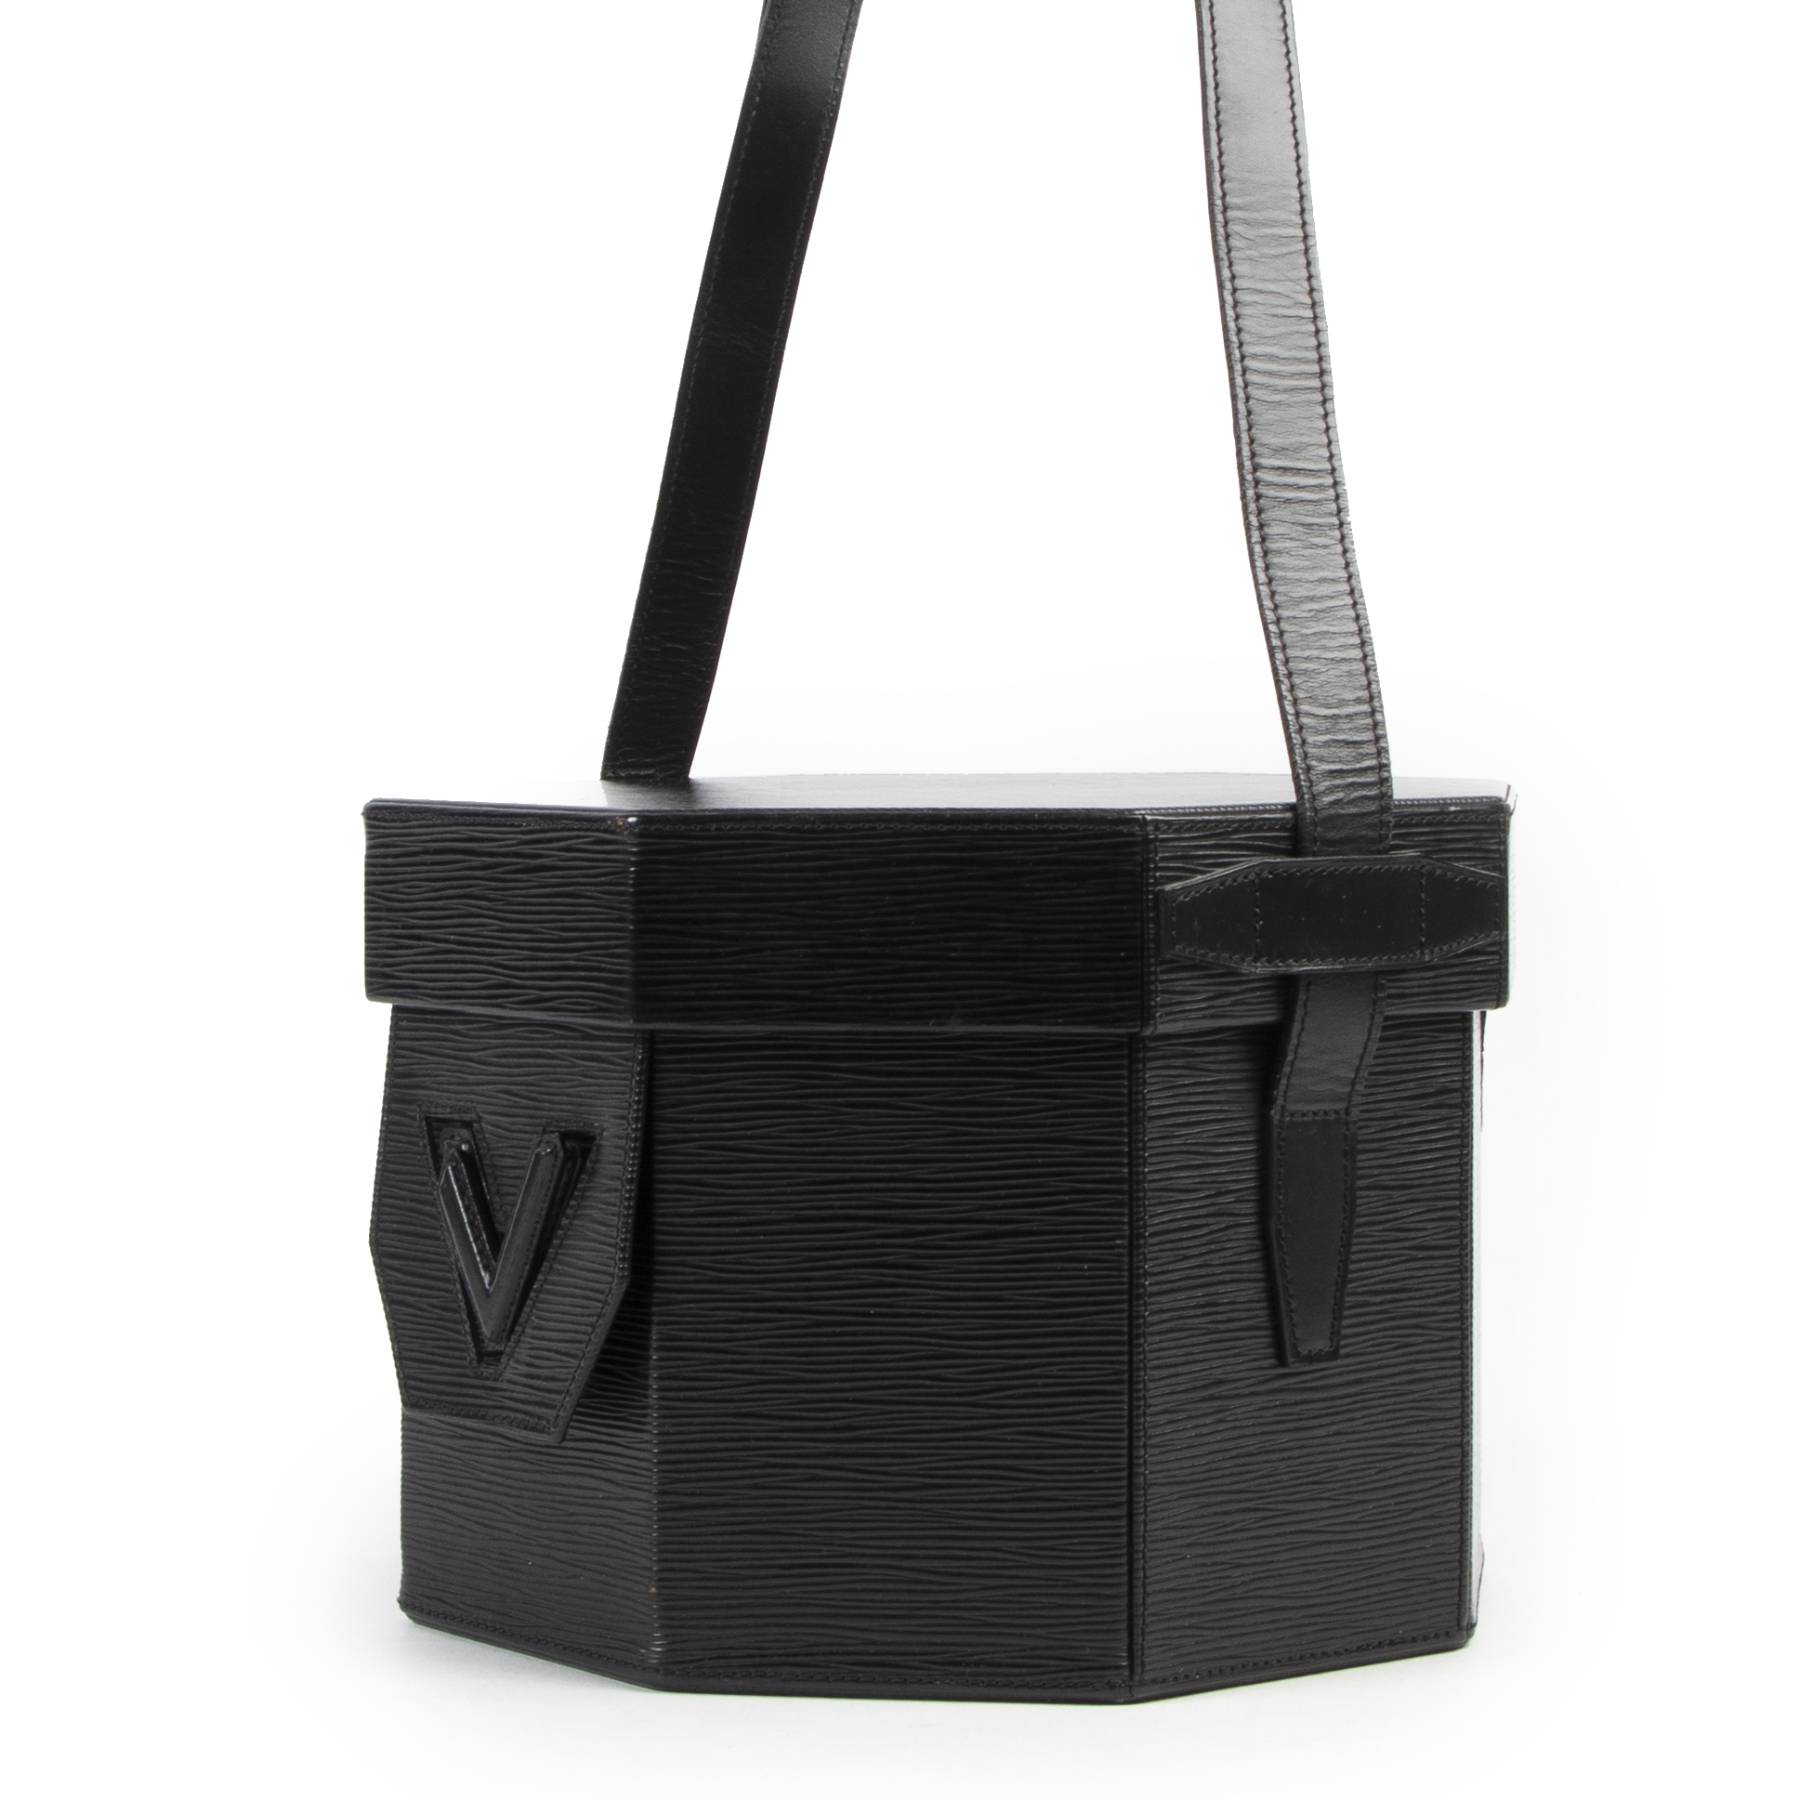 Louis Vuitton Black Epi Leather Octagon Bag